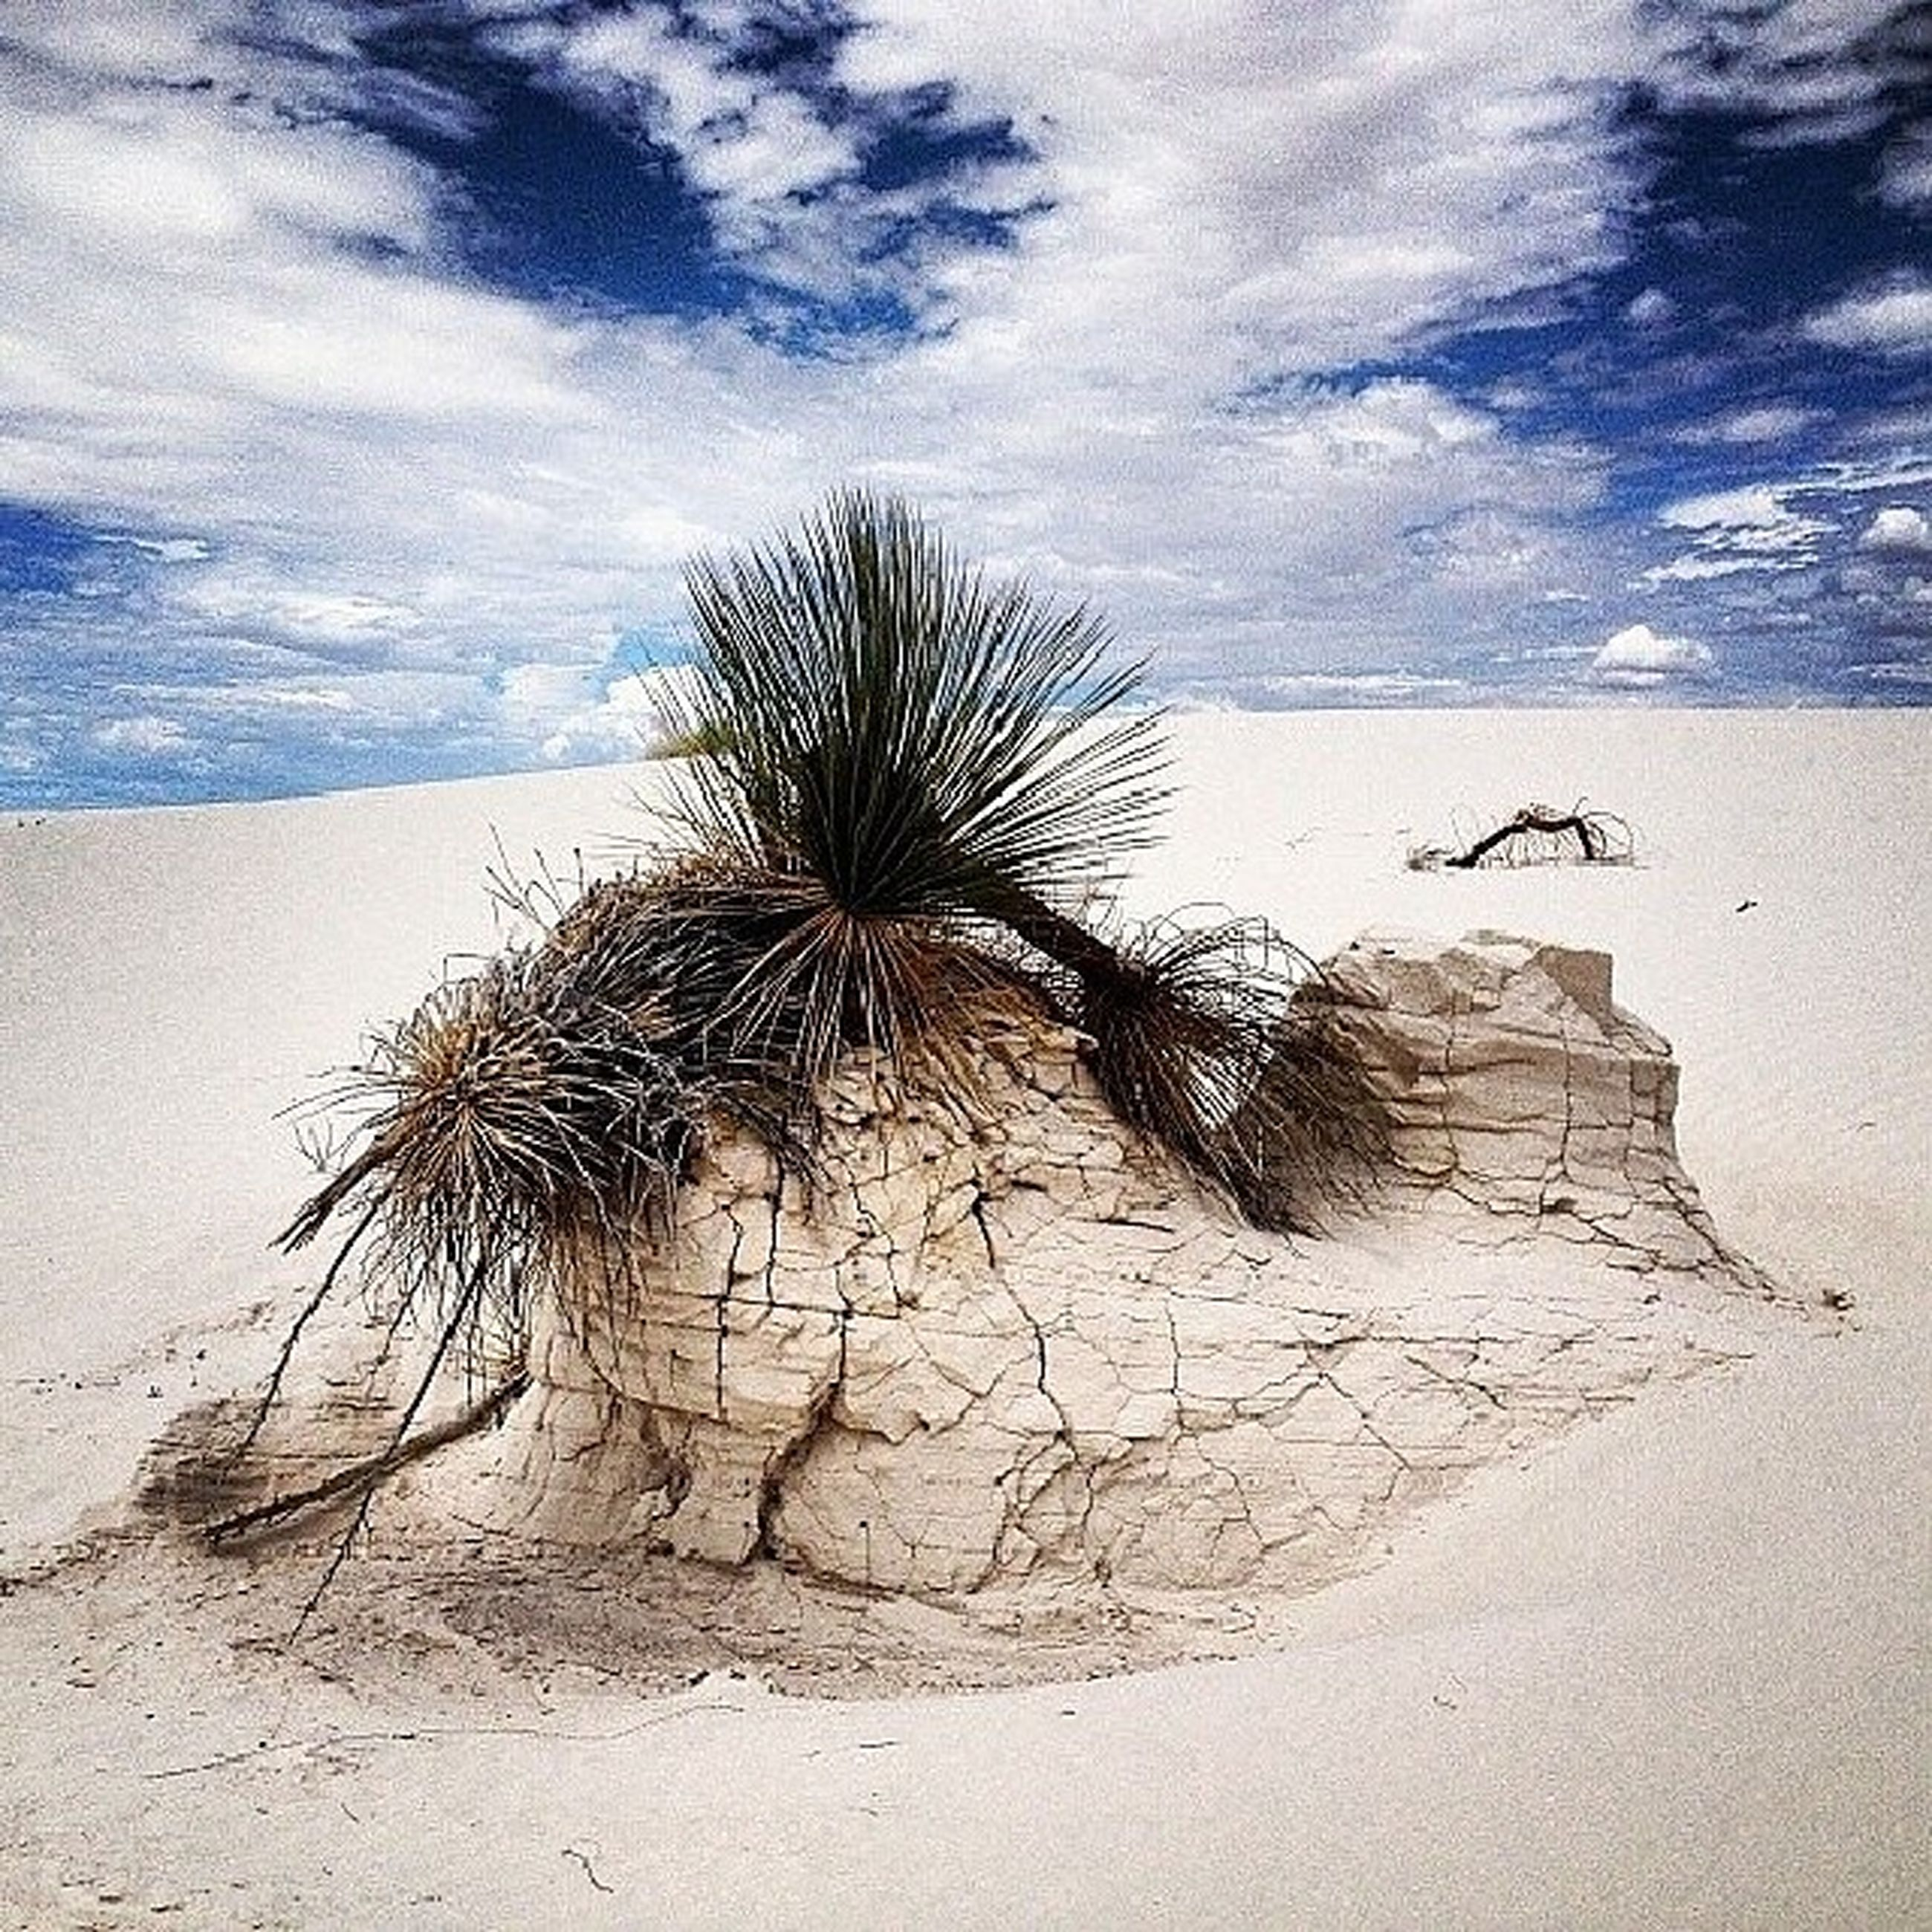 sky, palm tree, beach, sand, nature, cloud - sky, shore, tranquility, day, outdoors, no people, sea, low angle view, cloud, dead plant, tree, beauty in nature, wall - building feature, growth, shadow